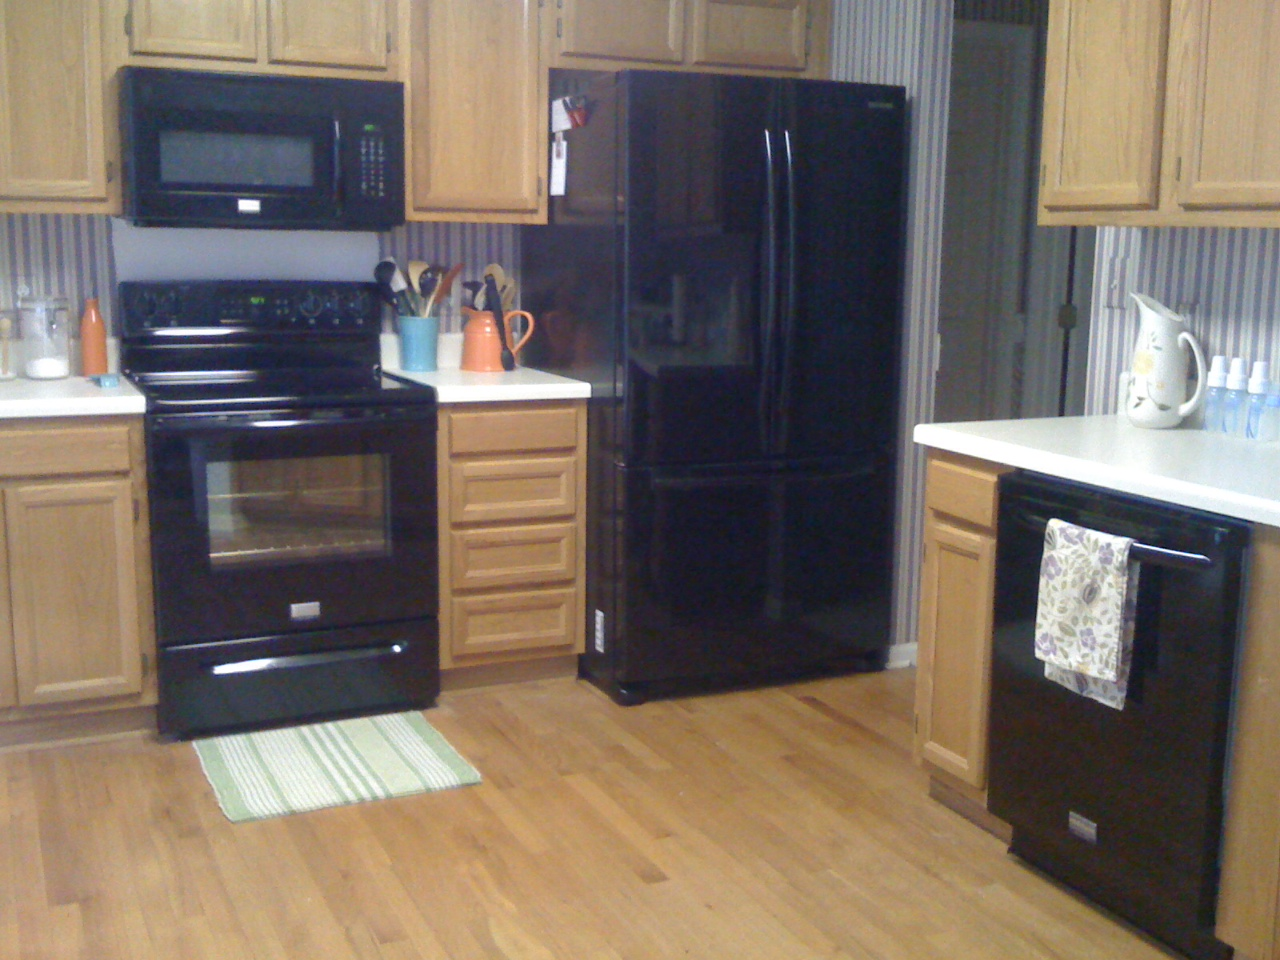 Kitchen appliances black kitchen appliances Kitchens with black appliances